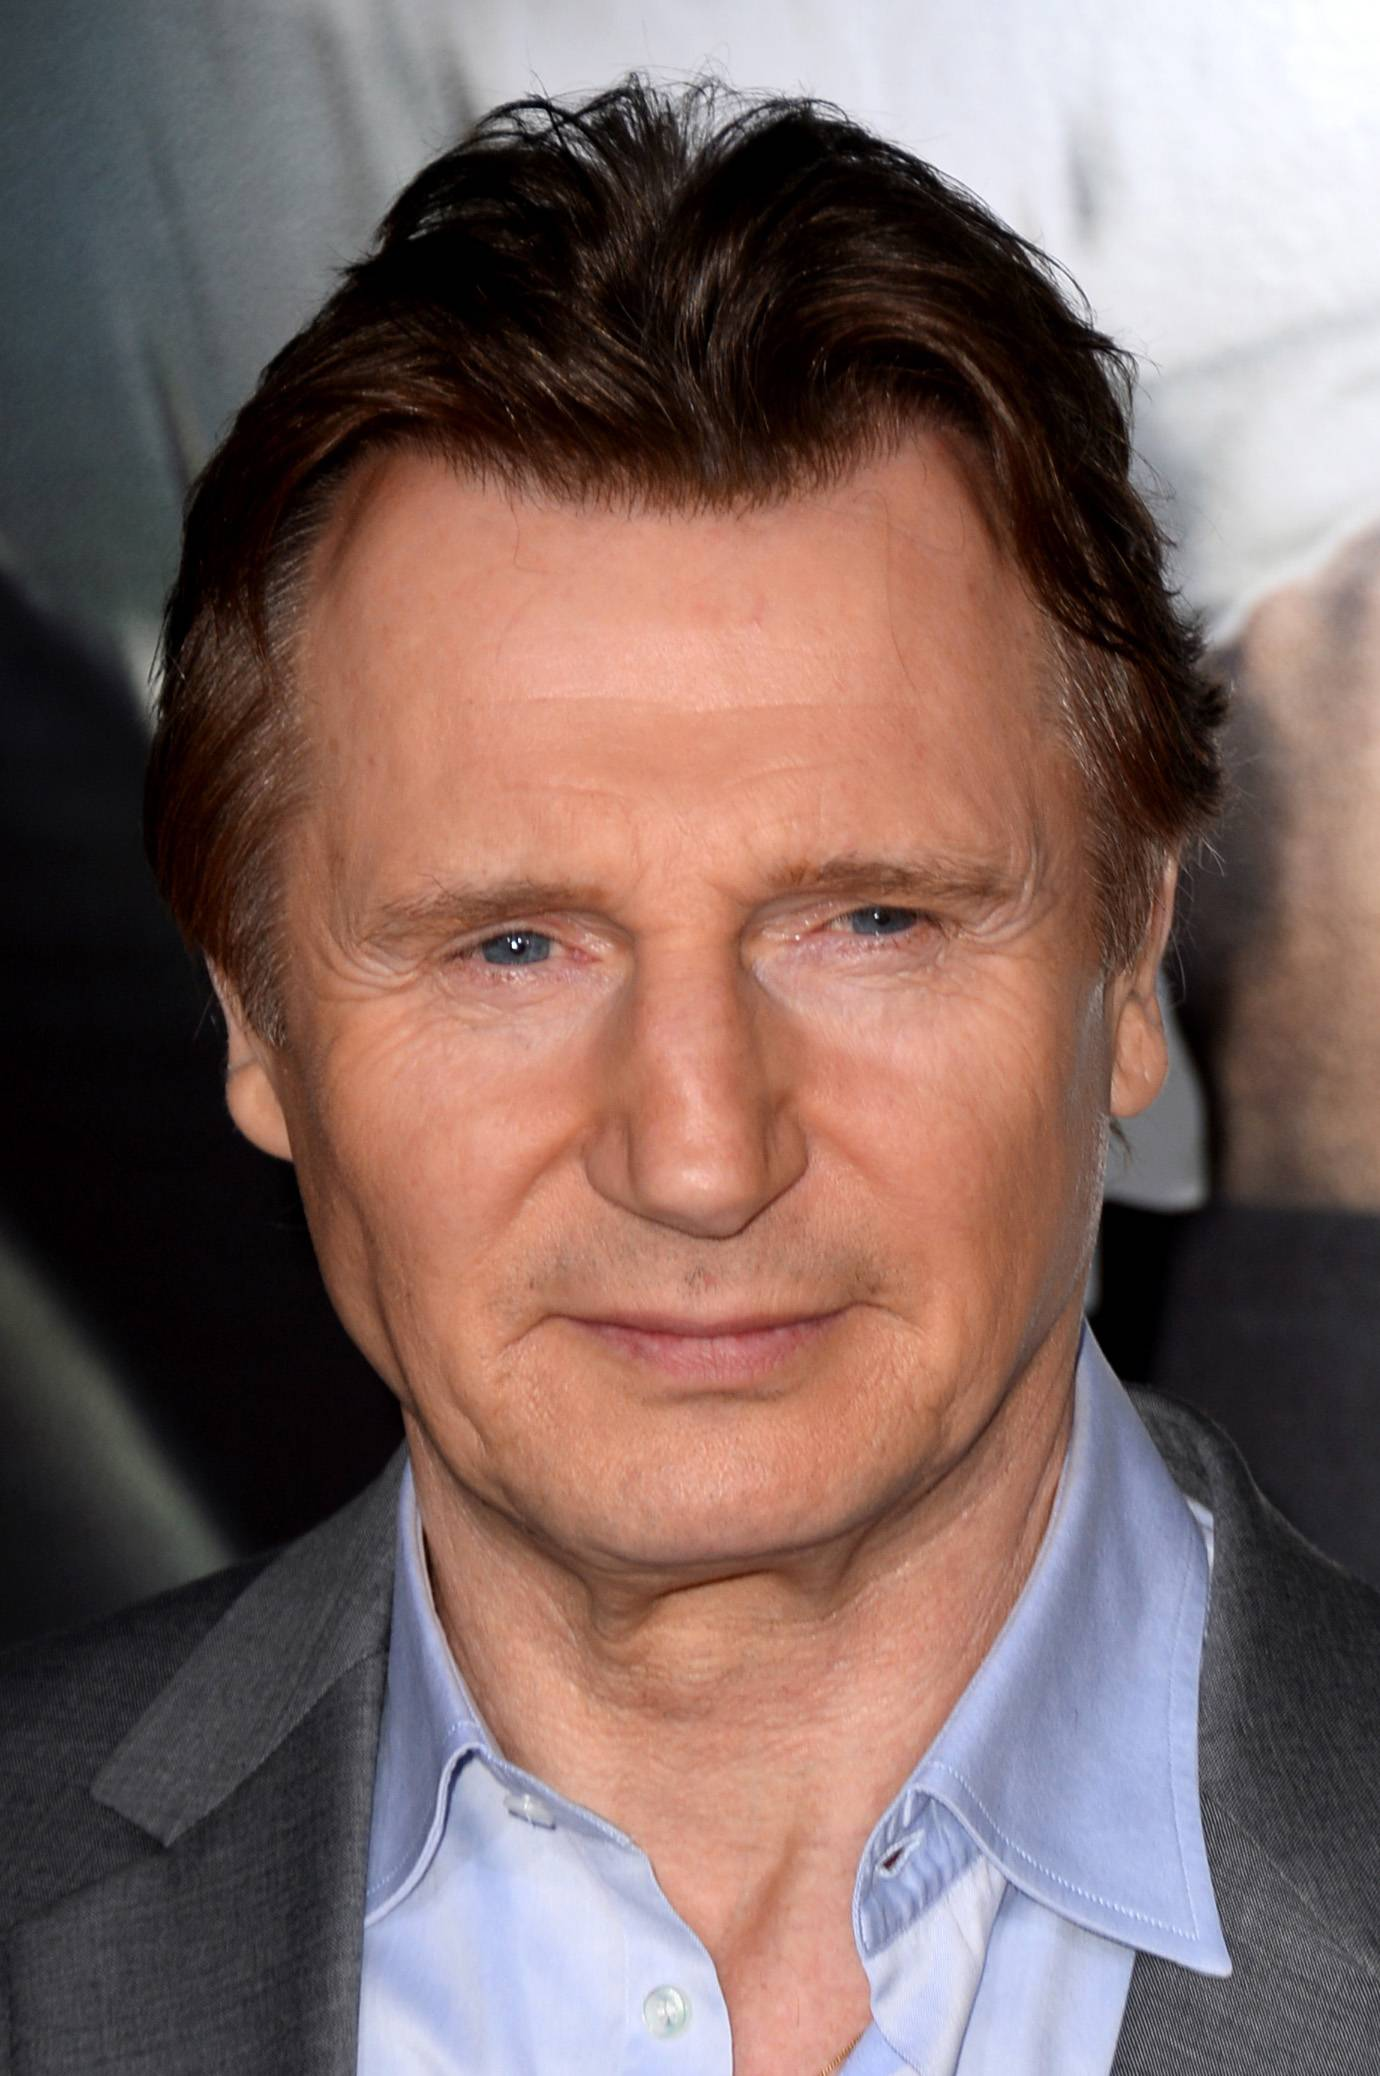 Animal-rights activists demonstrated outside Liam Neeson's New York home on Saturday to protest the actor's public stance that New York's carriage horses should keep working. Mayor Bill de Blasio has pledged to ban the horse-drawn carriages and replace them with electric vintage-style cars, commissioned by a group called NYCLASS.